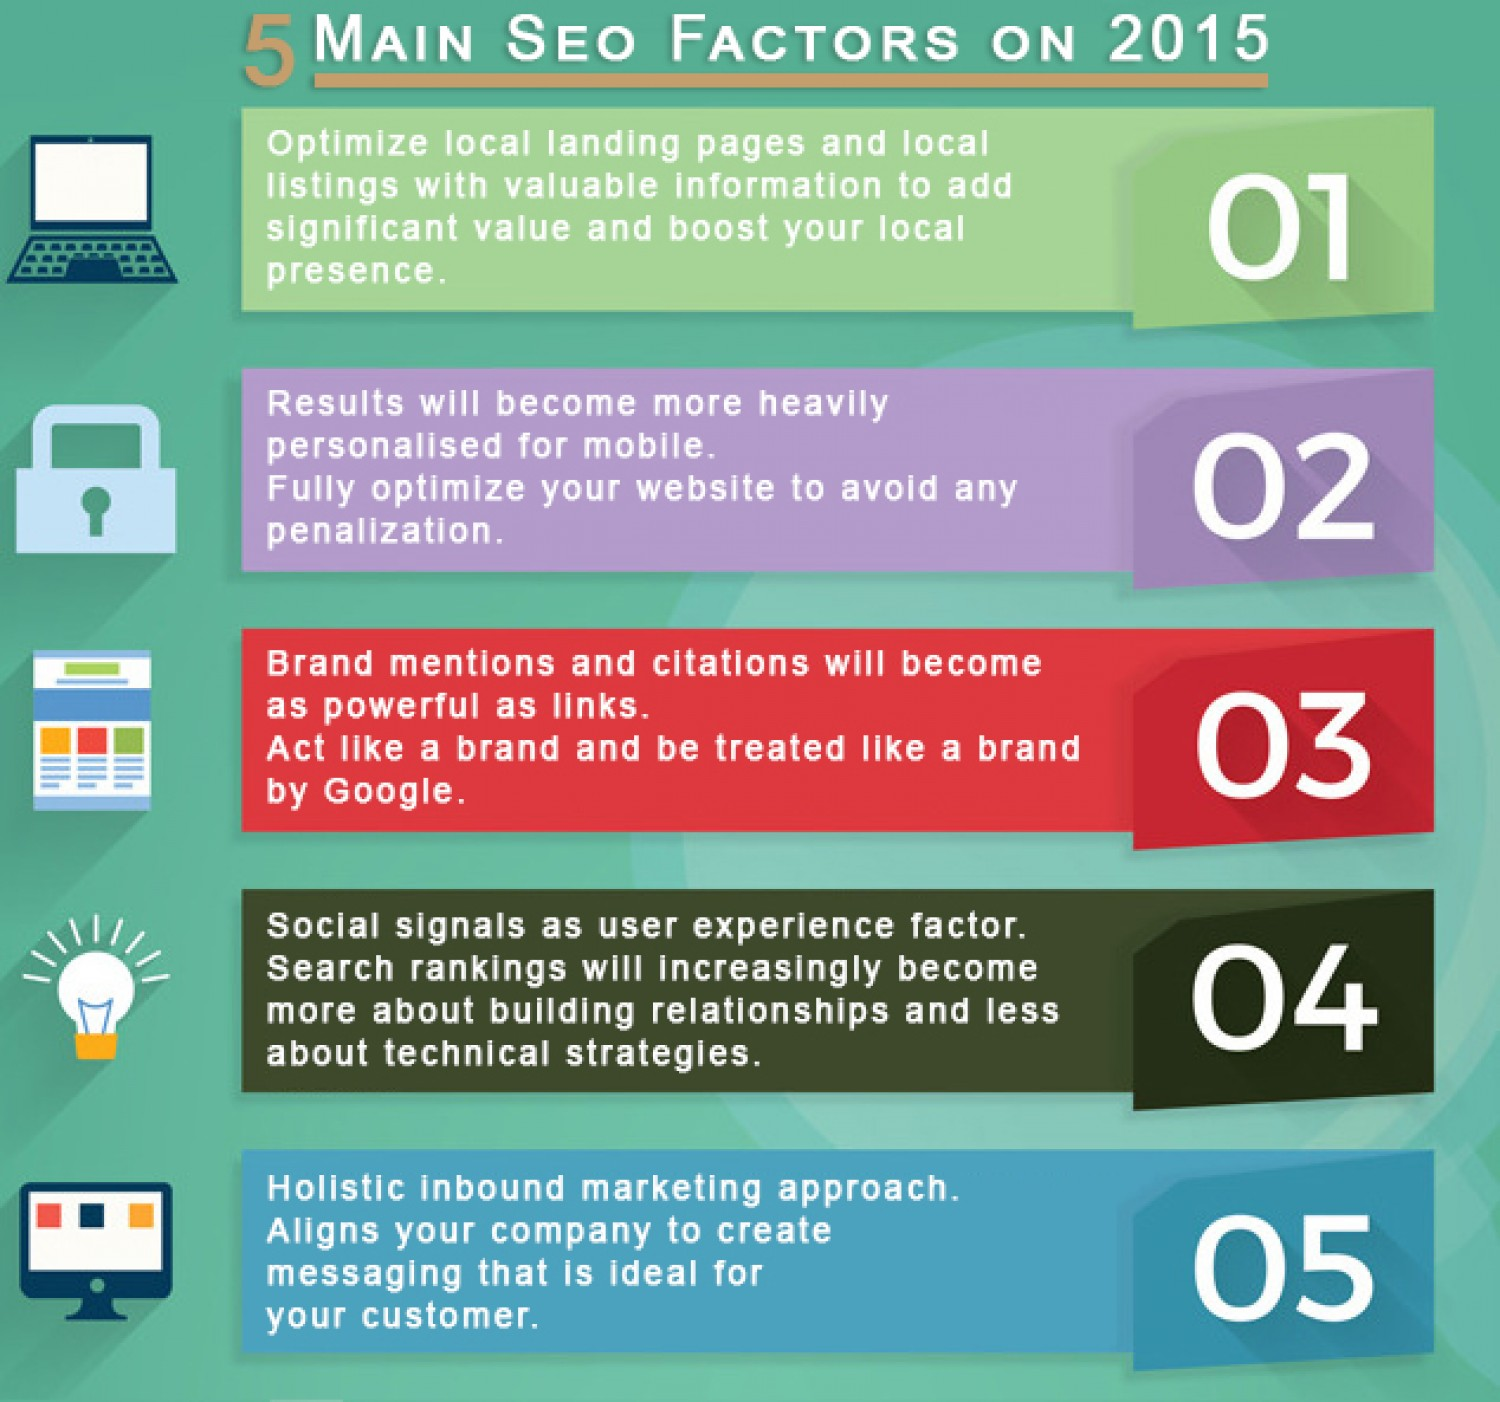 5-main-seo-ranking-factors-on-2015_54bd1bc9951b2_w1500